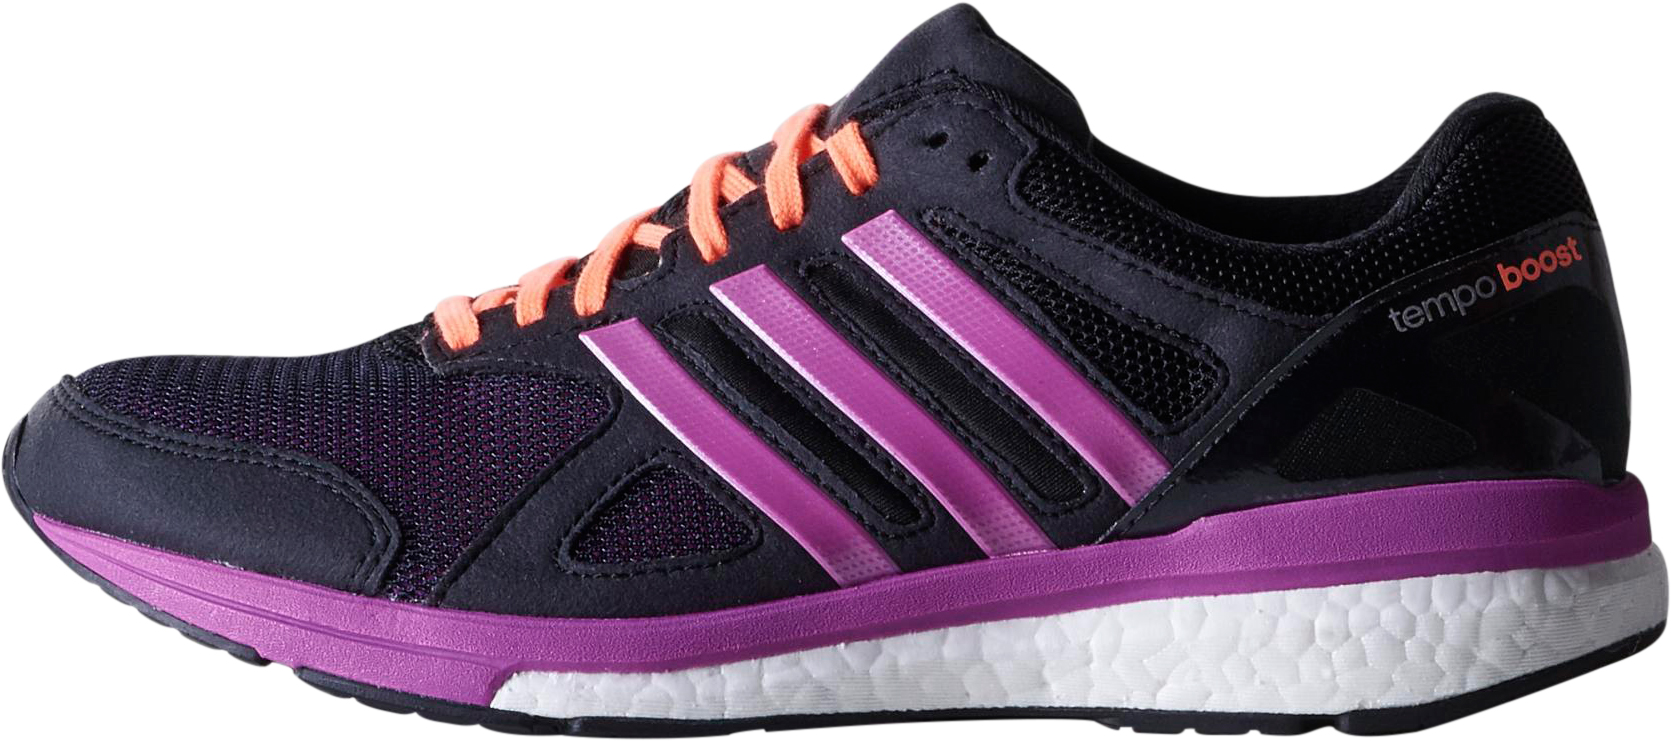 3qpvua8y uk adidas womens shoes clearance